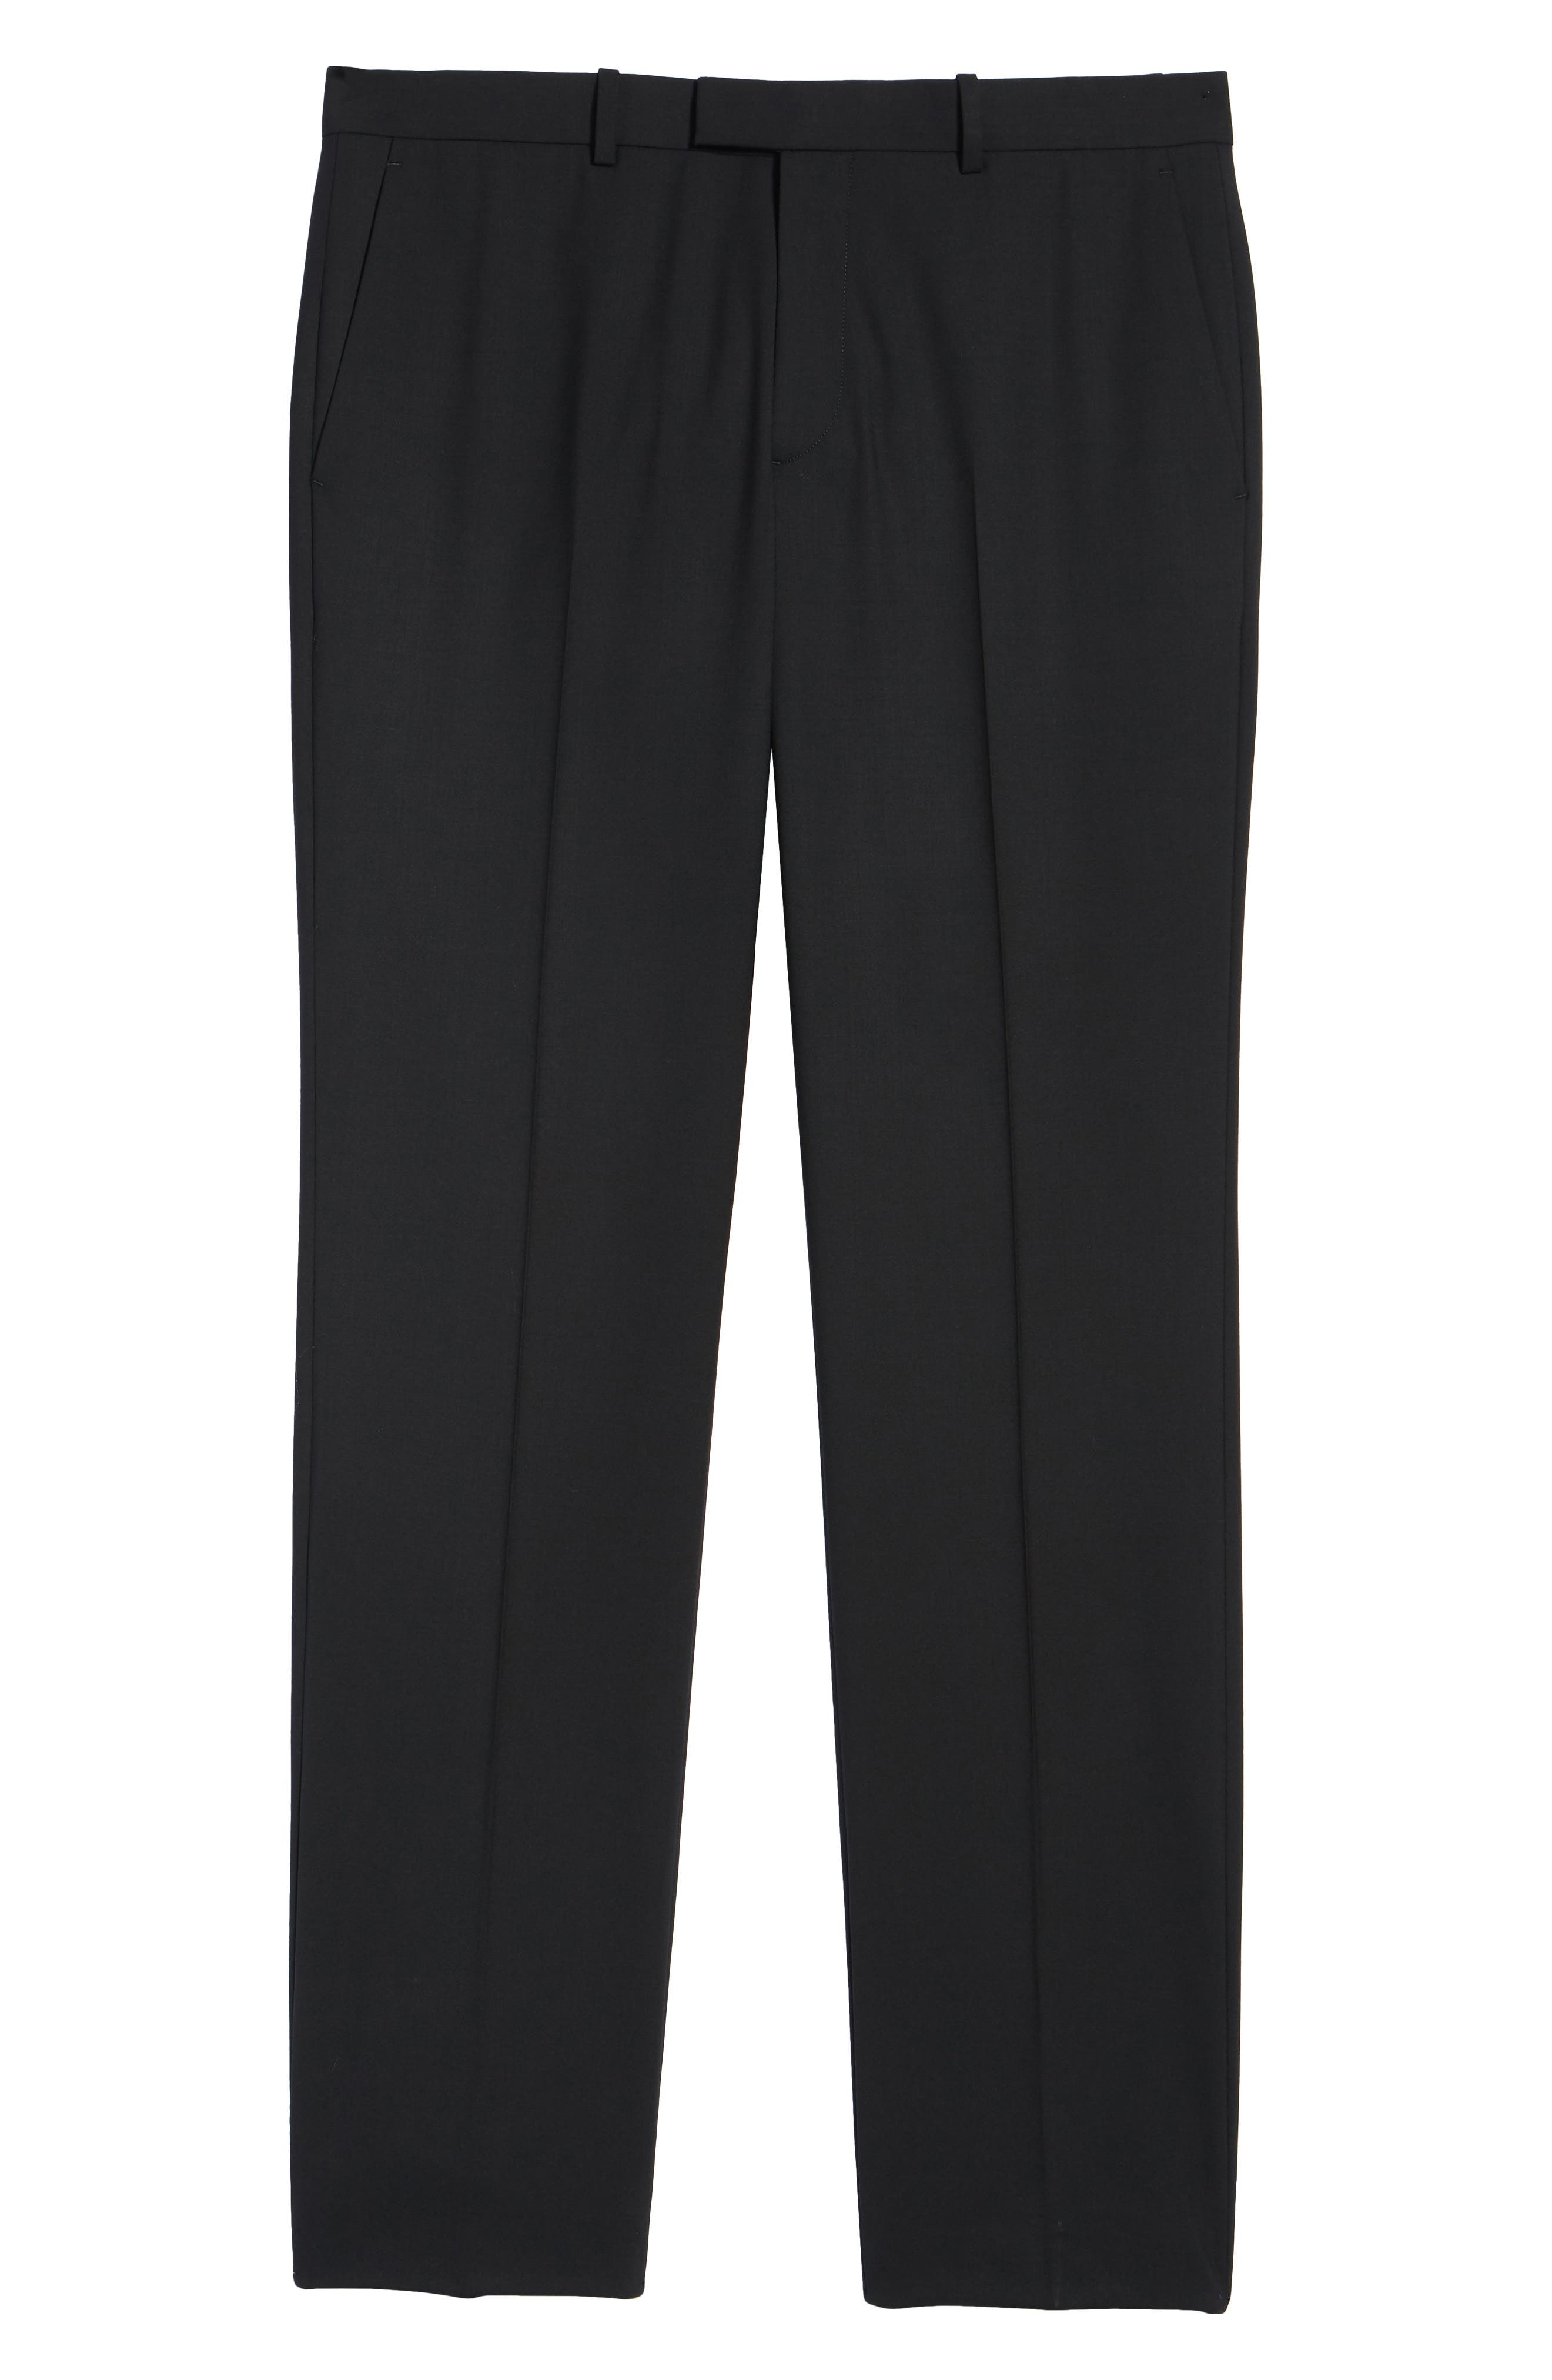 Marlo Flat Front Stretch Wool Pants,                             Alternate thumbnail 6, color,                             001